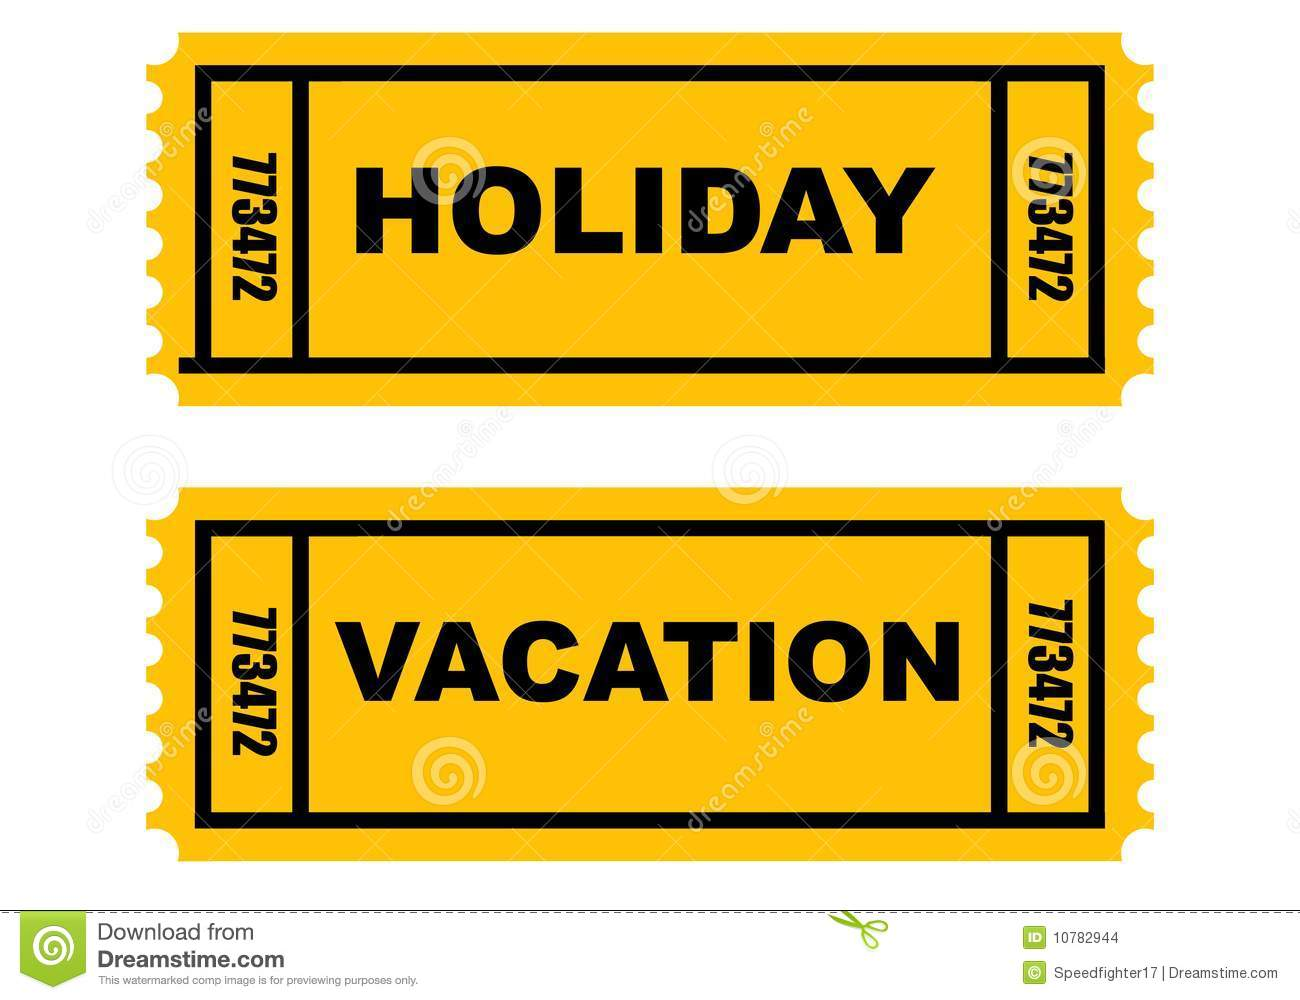 Holiday vs vacation